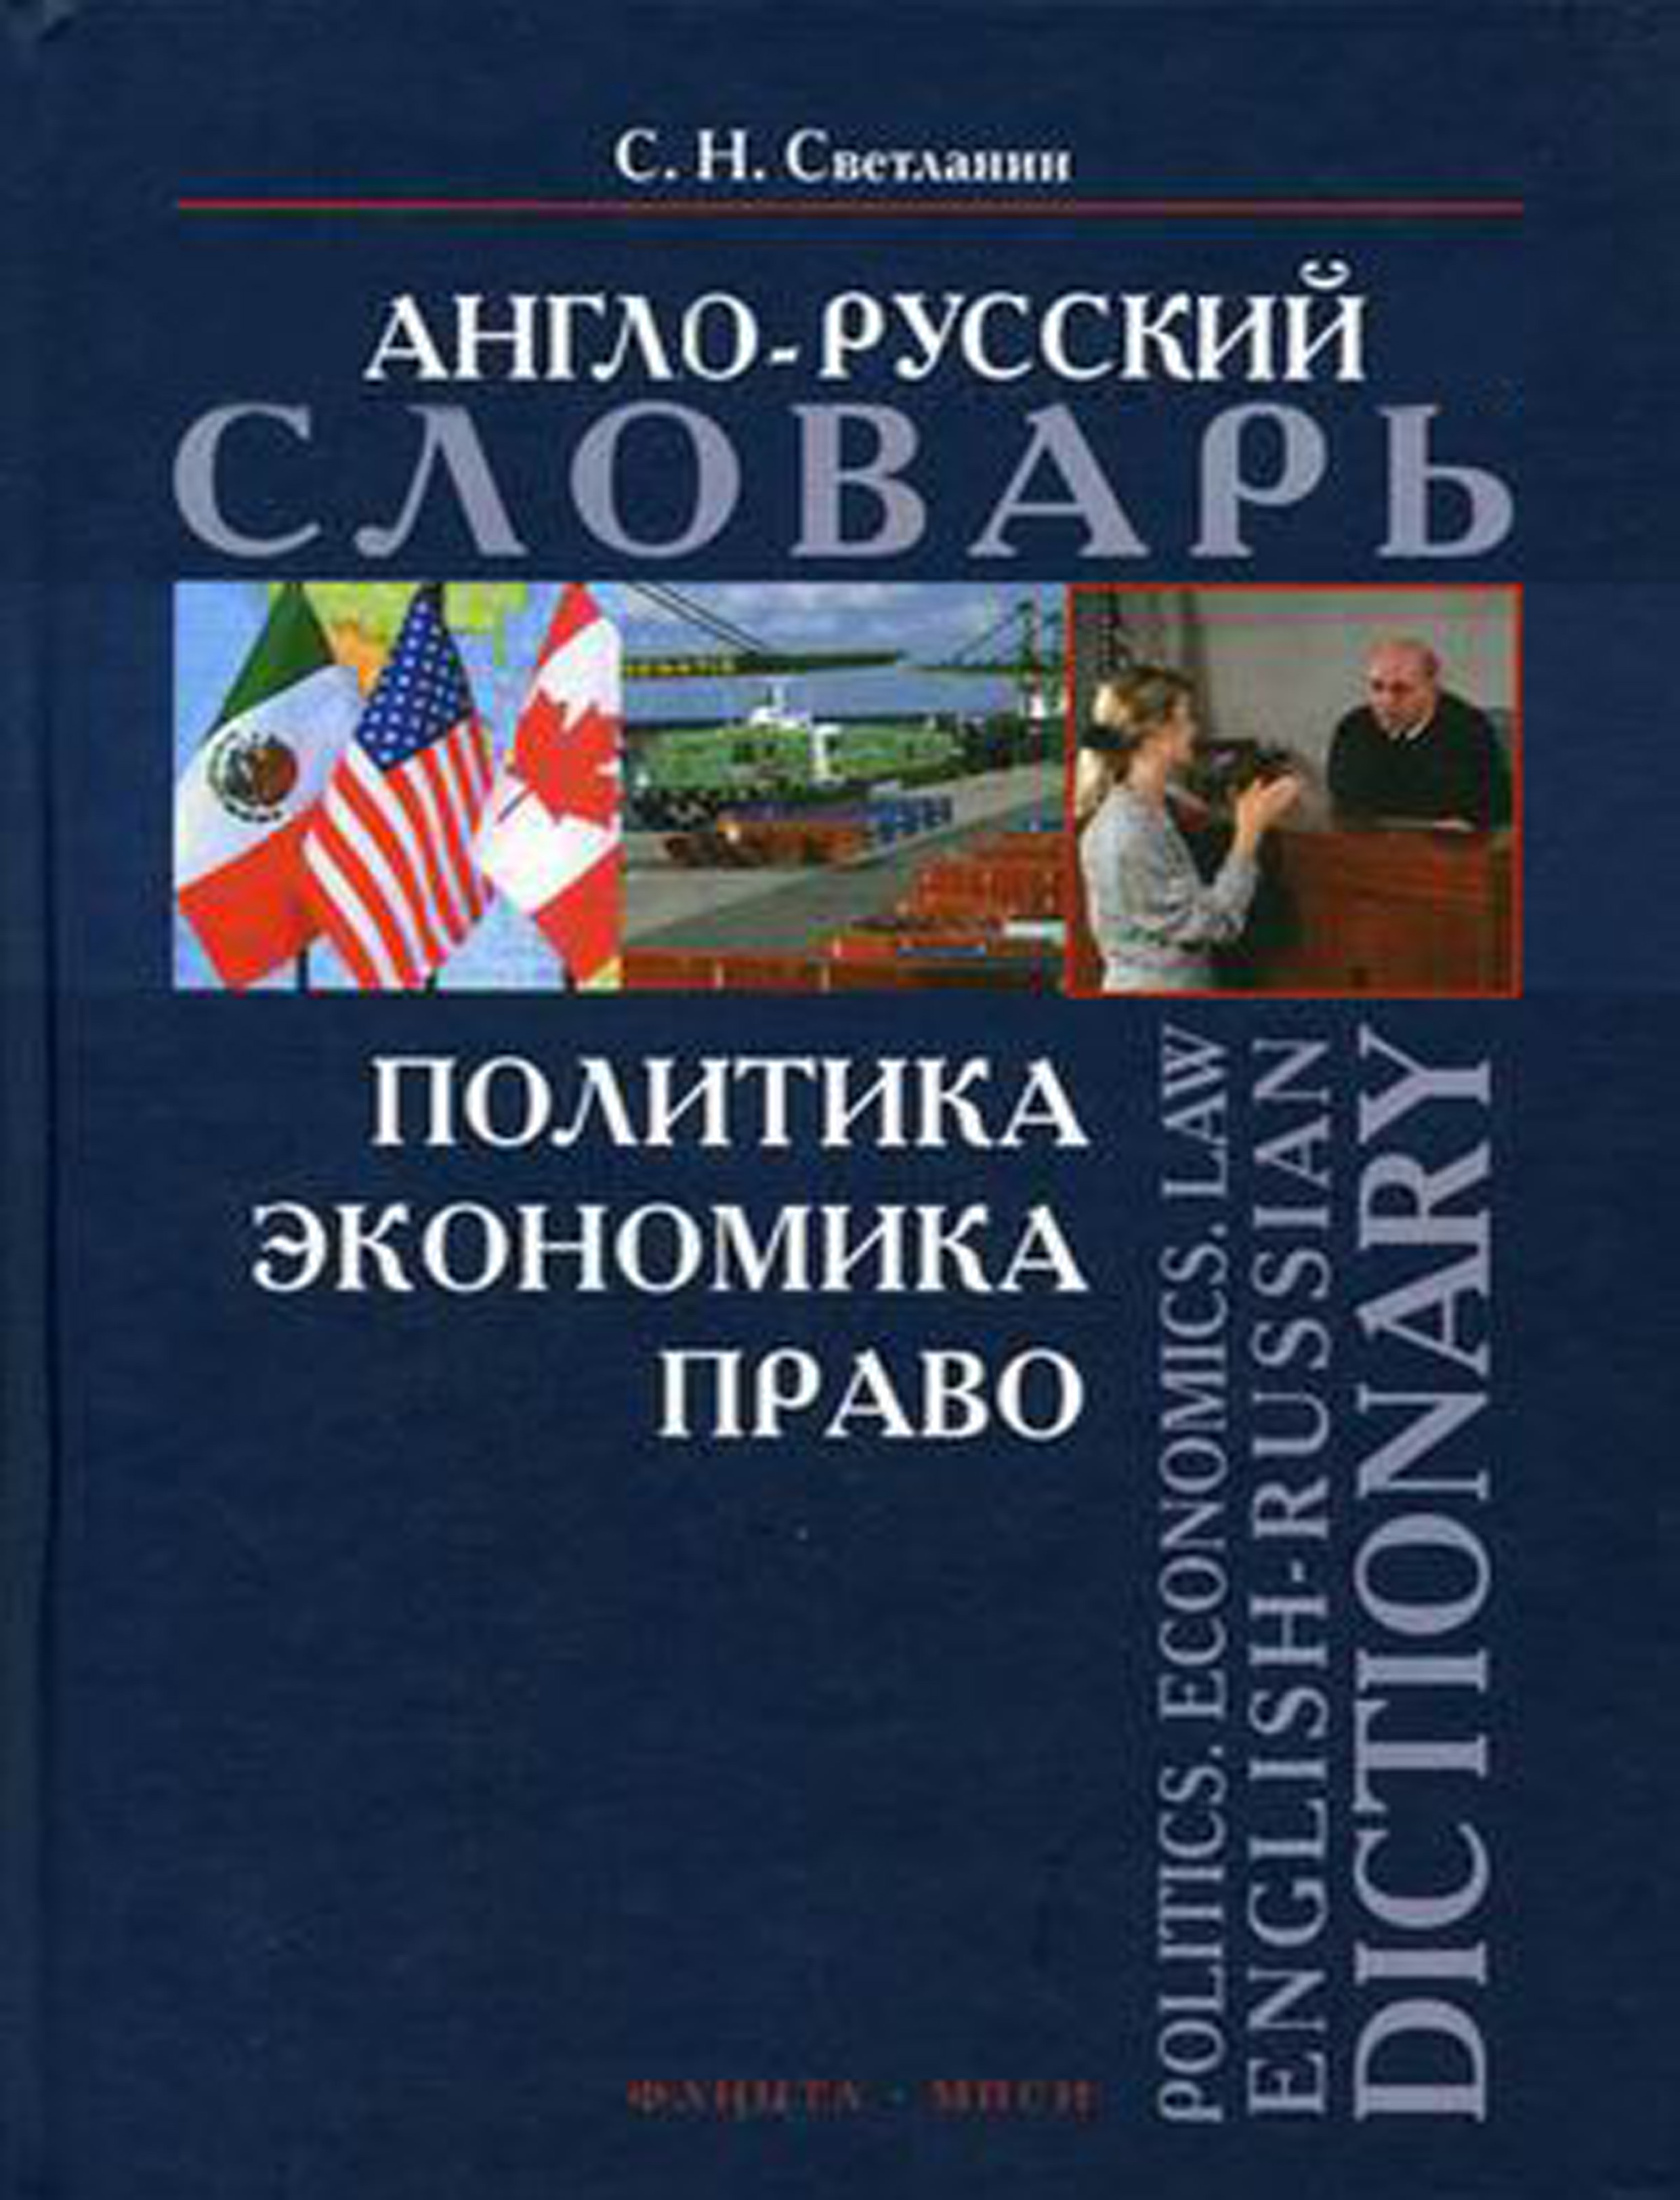 С. Н. Светланин Политика. Экономика. Право. Англо-русский словарь / Politics. Economics. Law. English-Russian Dictionary цены онлайн